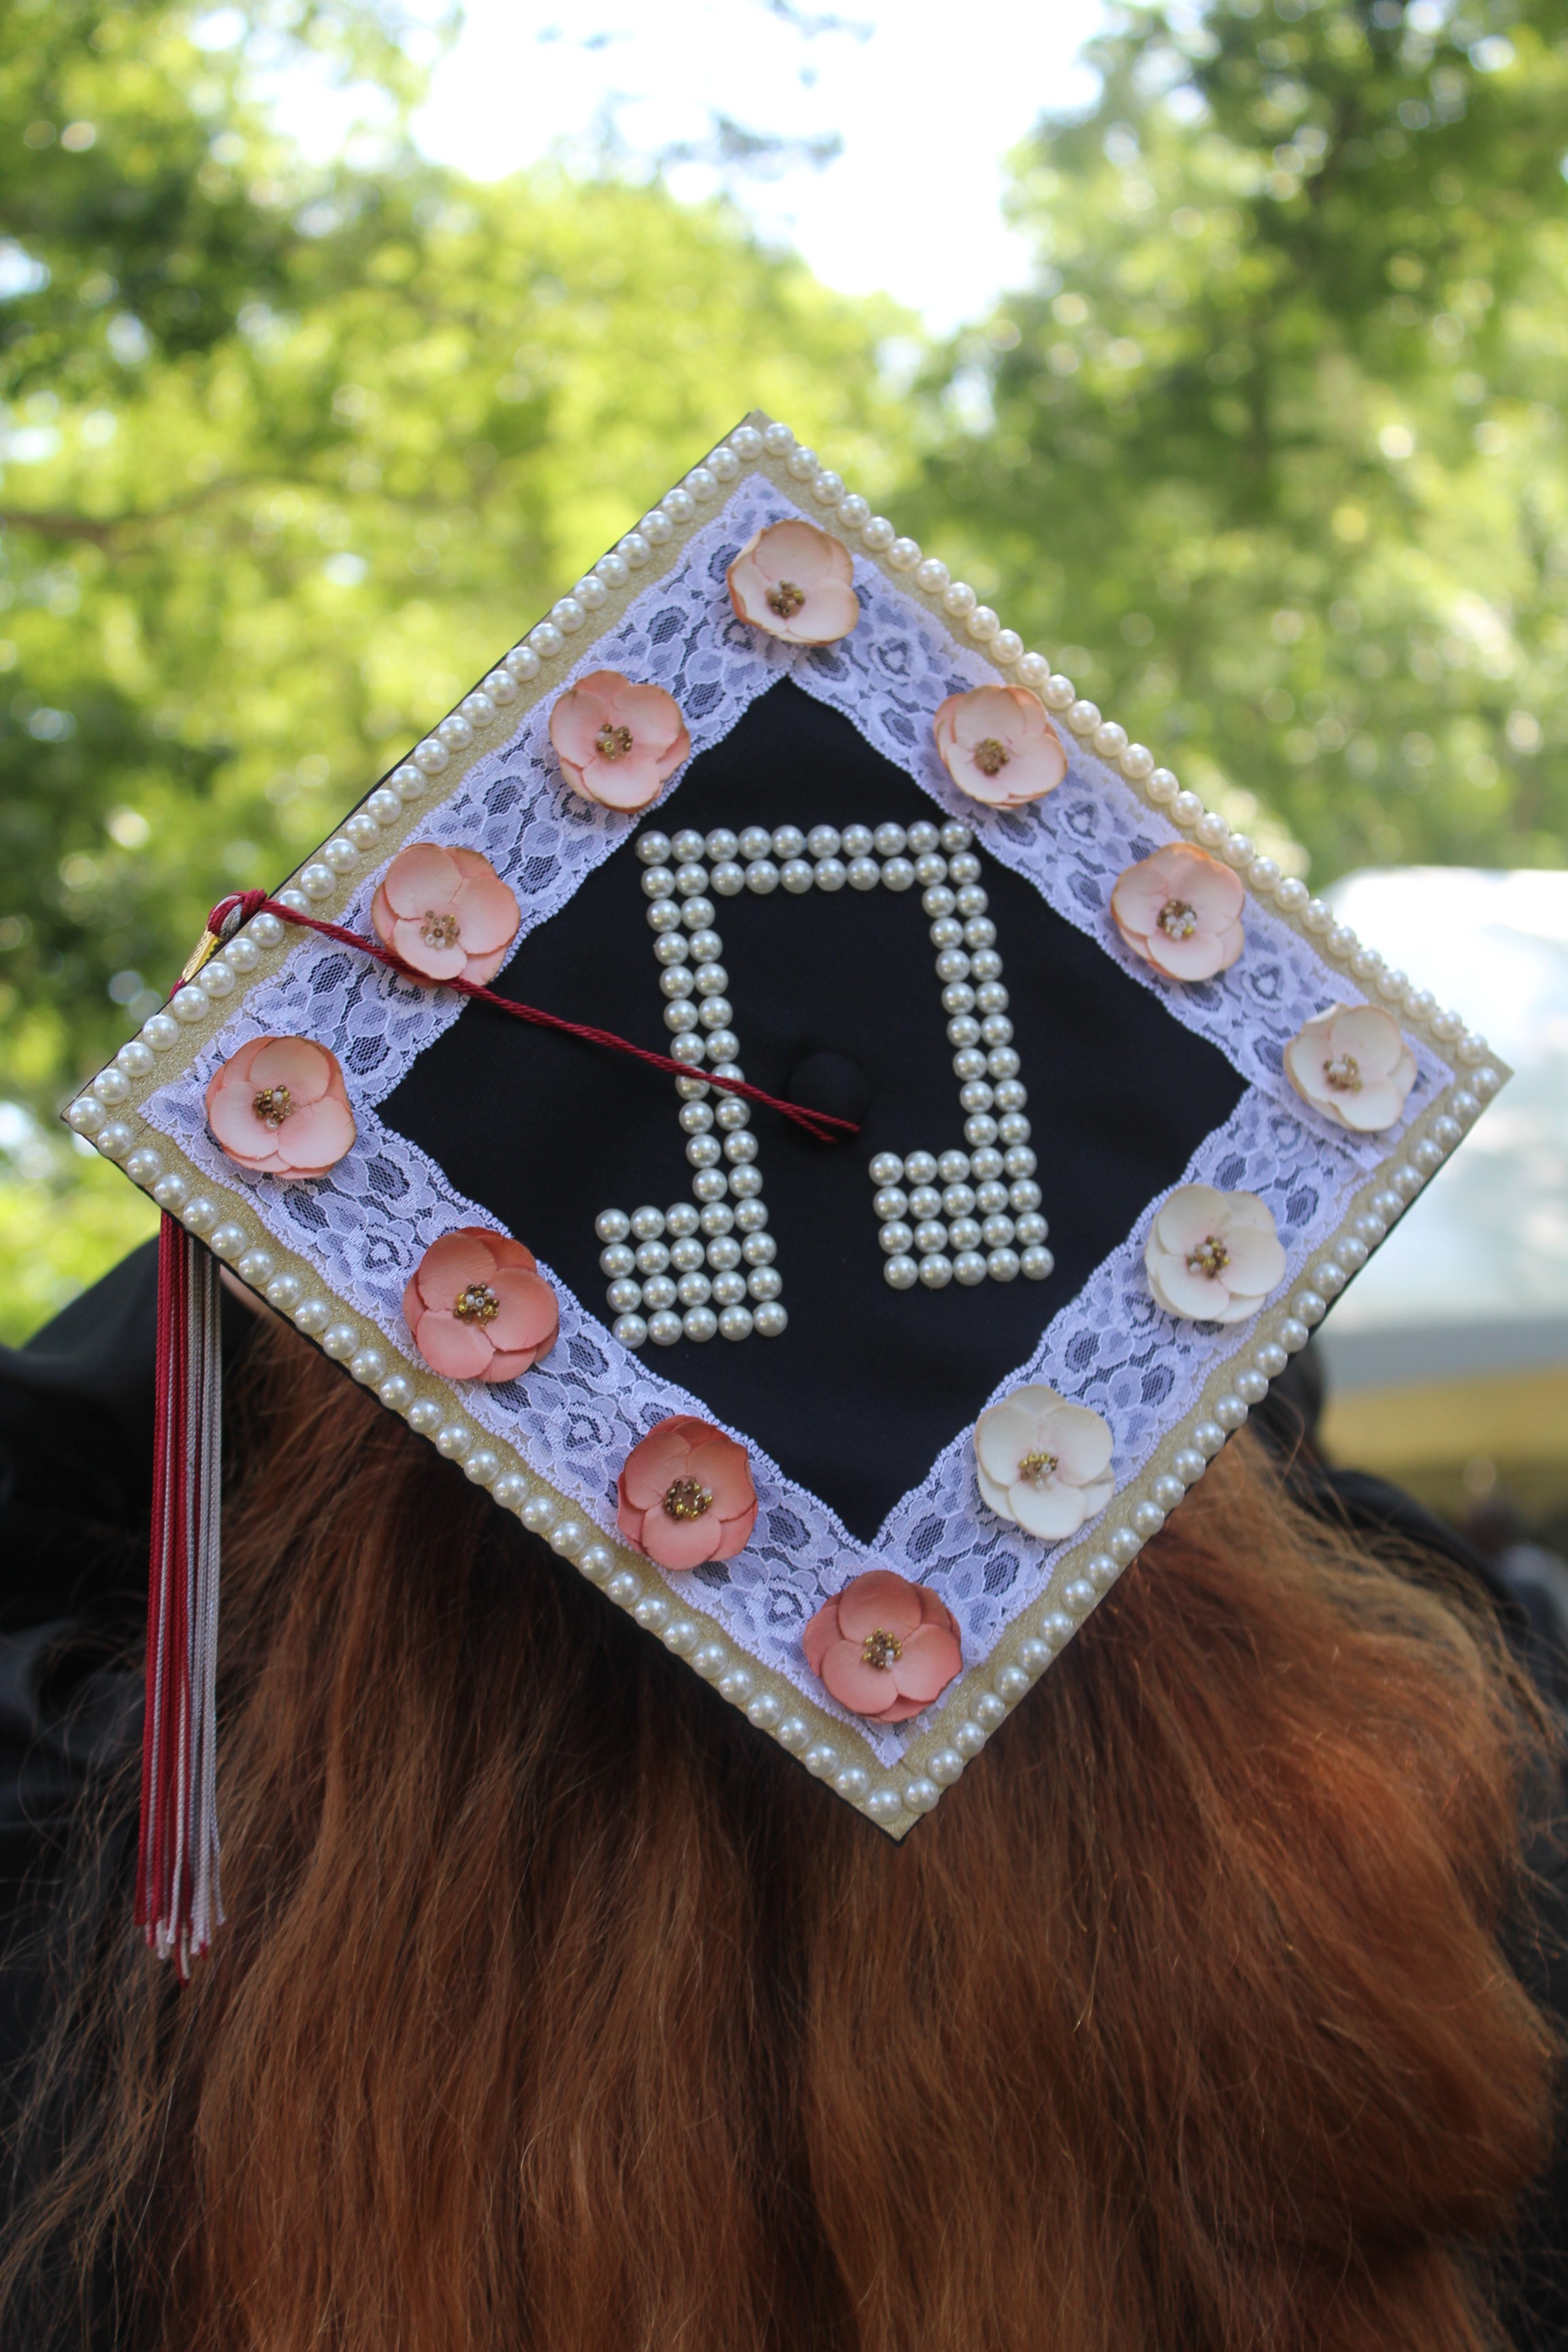 A decorated graduation cap for the musically inclined.